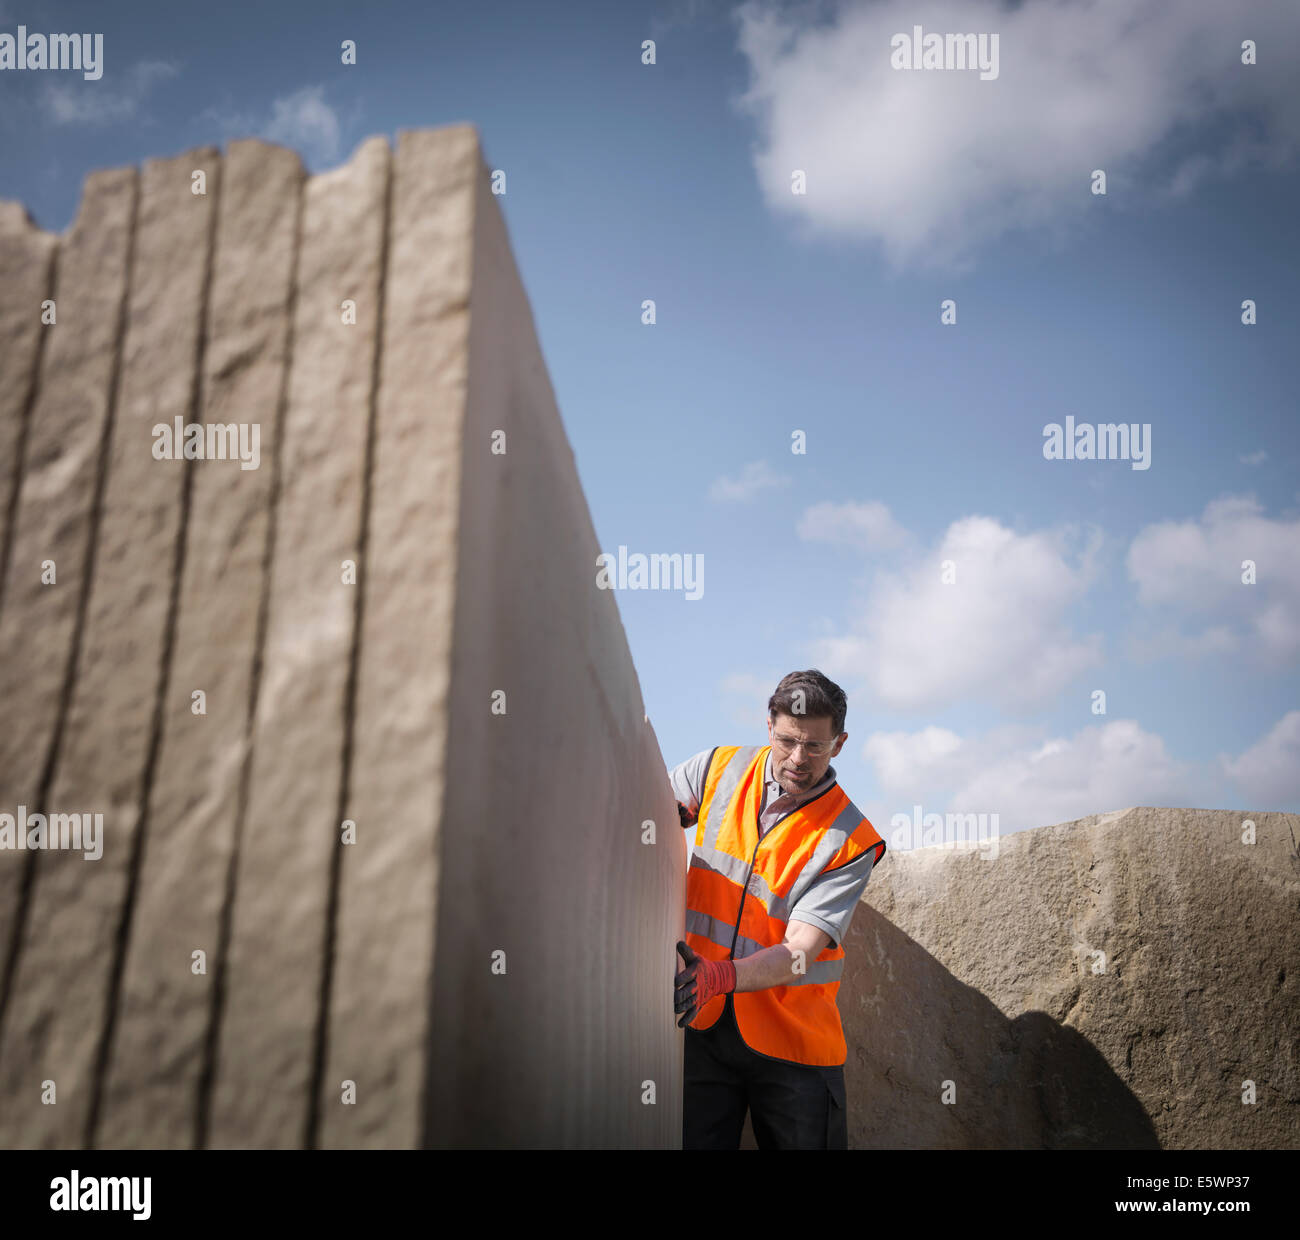 Quarry worker inspecting cut stone, low angle view - Stock Image